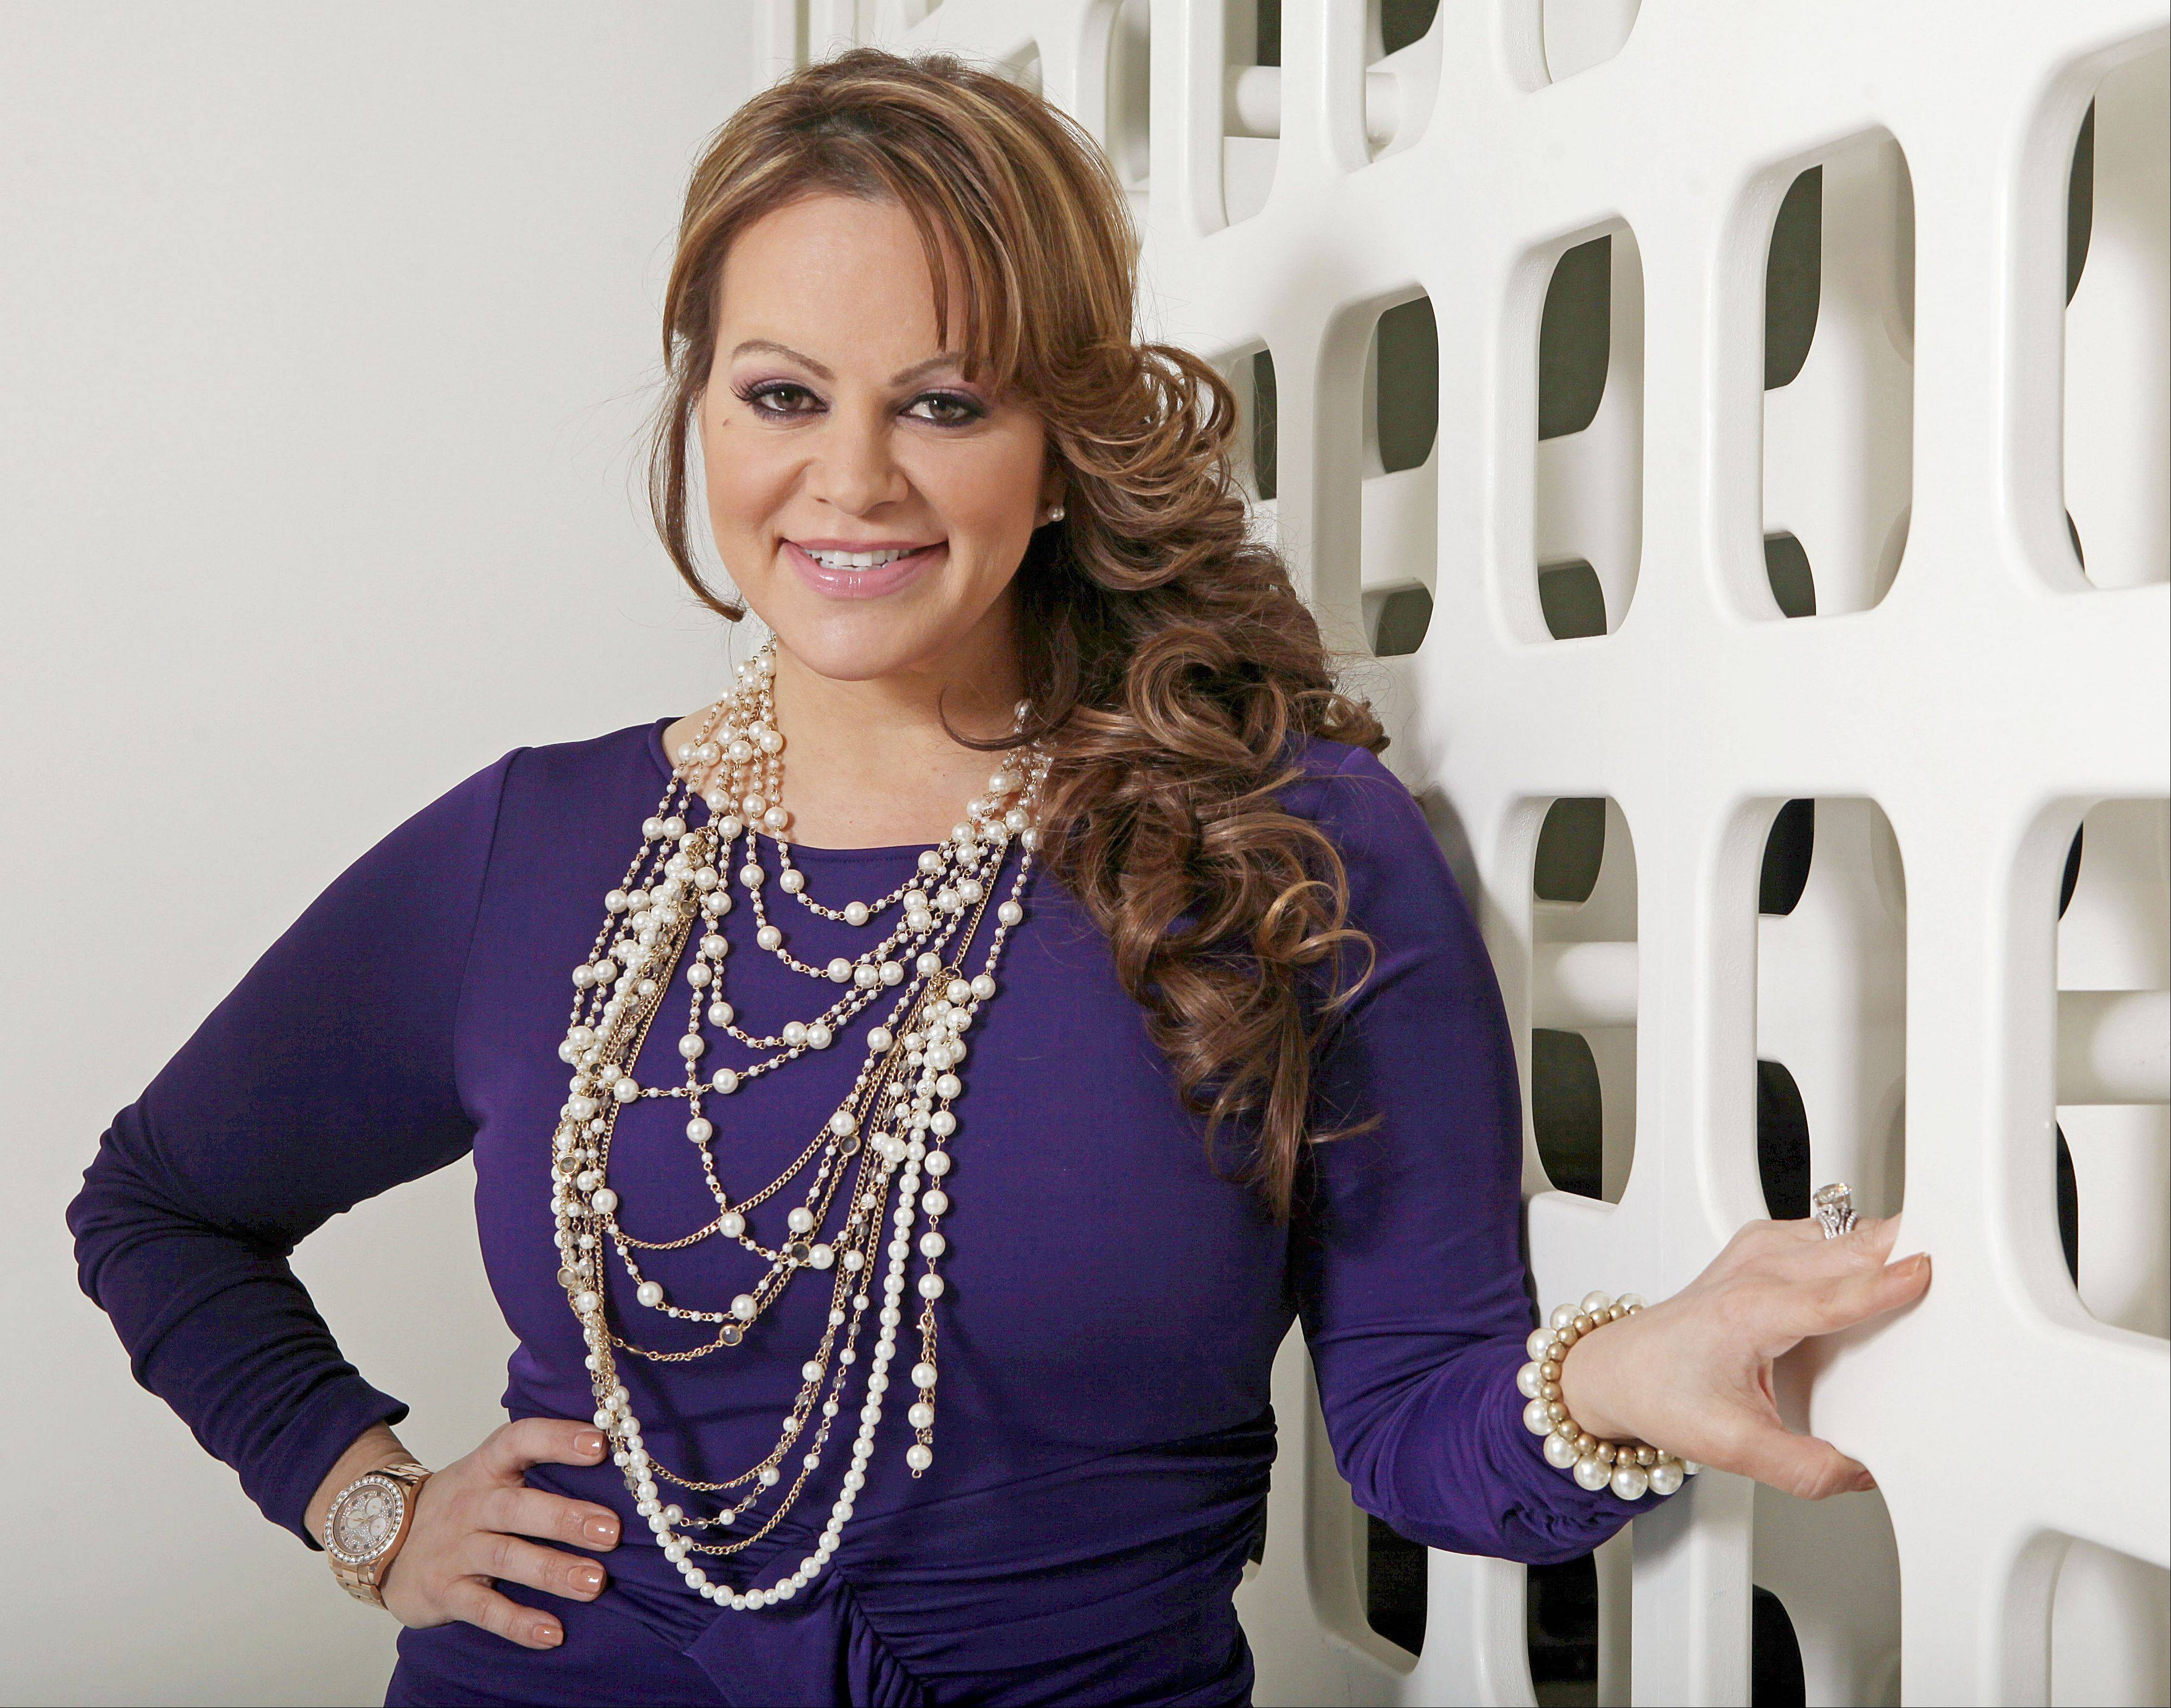 Mexican-American singer and reality TV star Jenni Rivera poses during an interview in Los Angeles. Mexican authorities confirmed the plane in which she was traveling disappeared early Sunday, after leaving the Mexican northern city of Monterrey where she performed in concert on Saturday night.